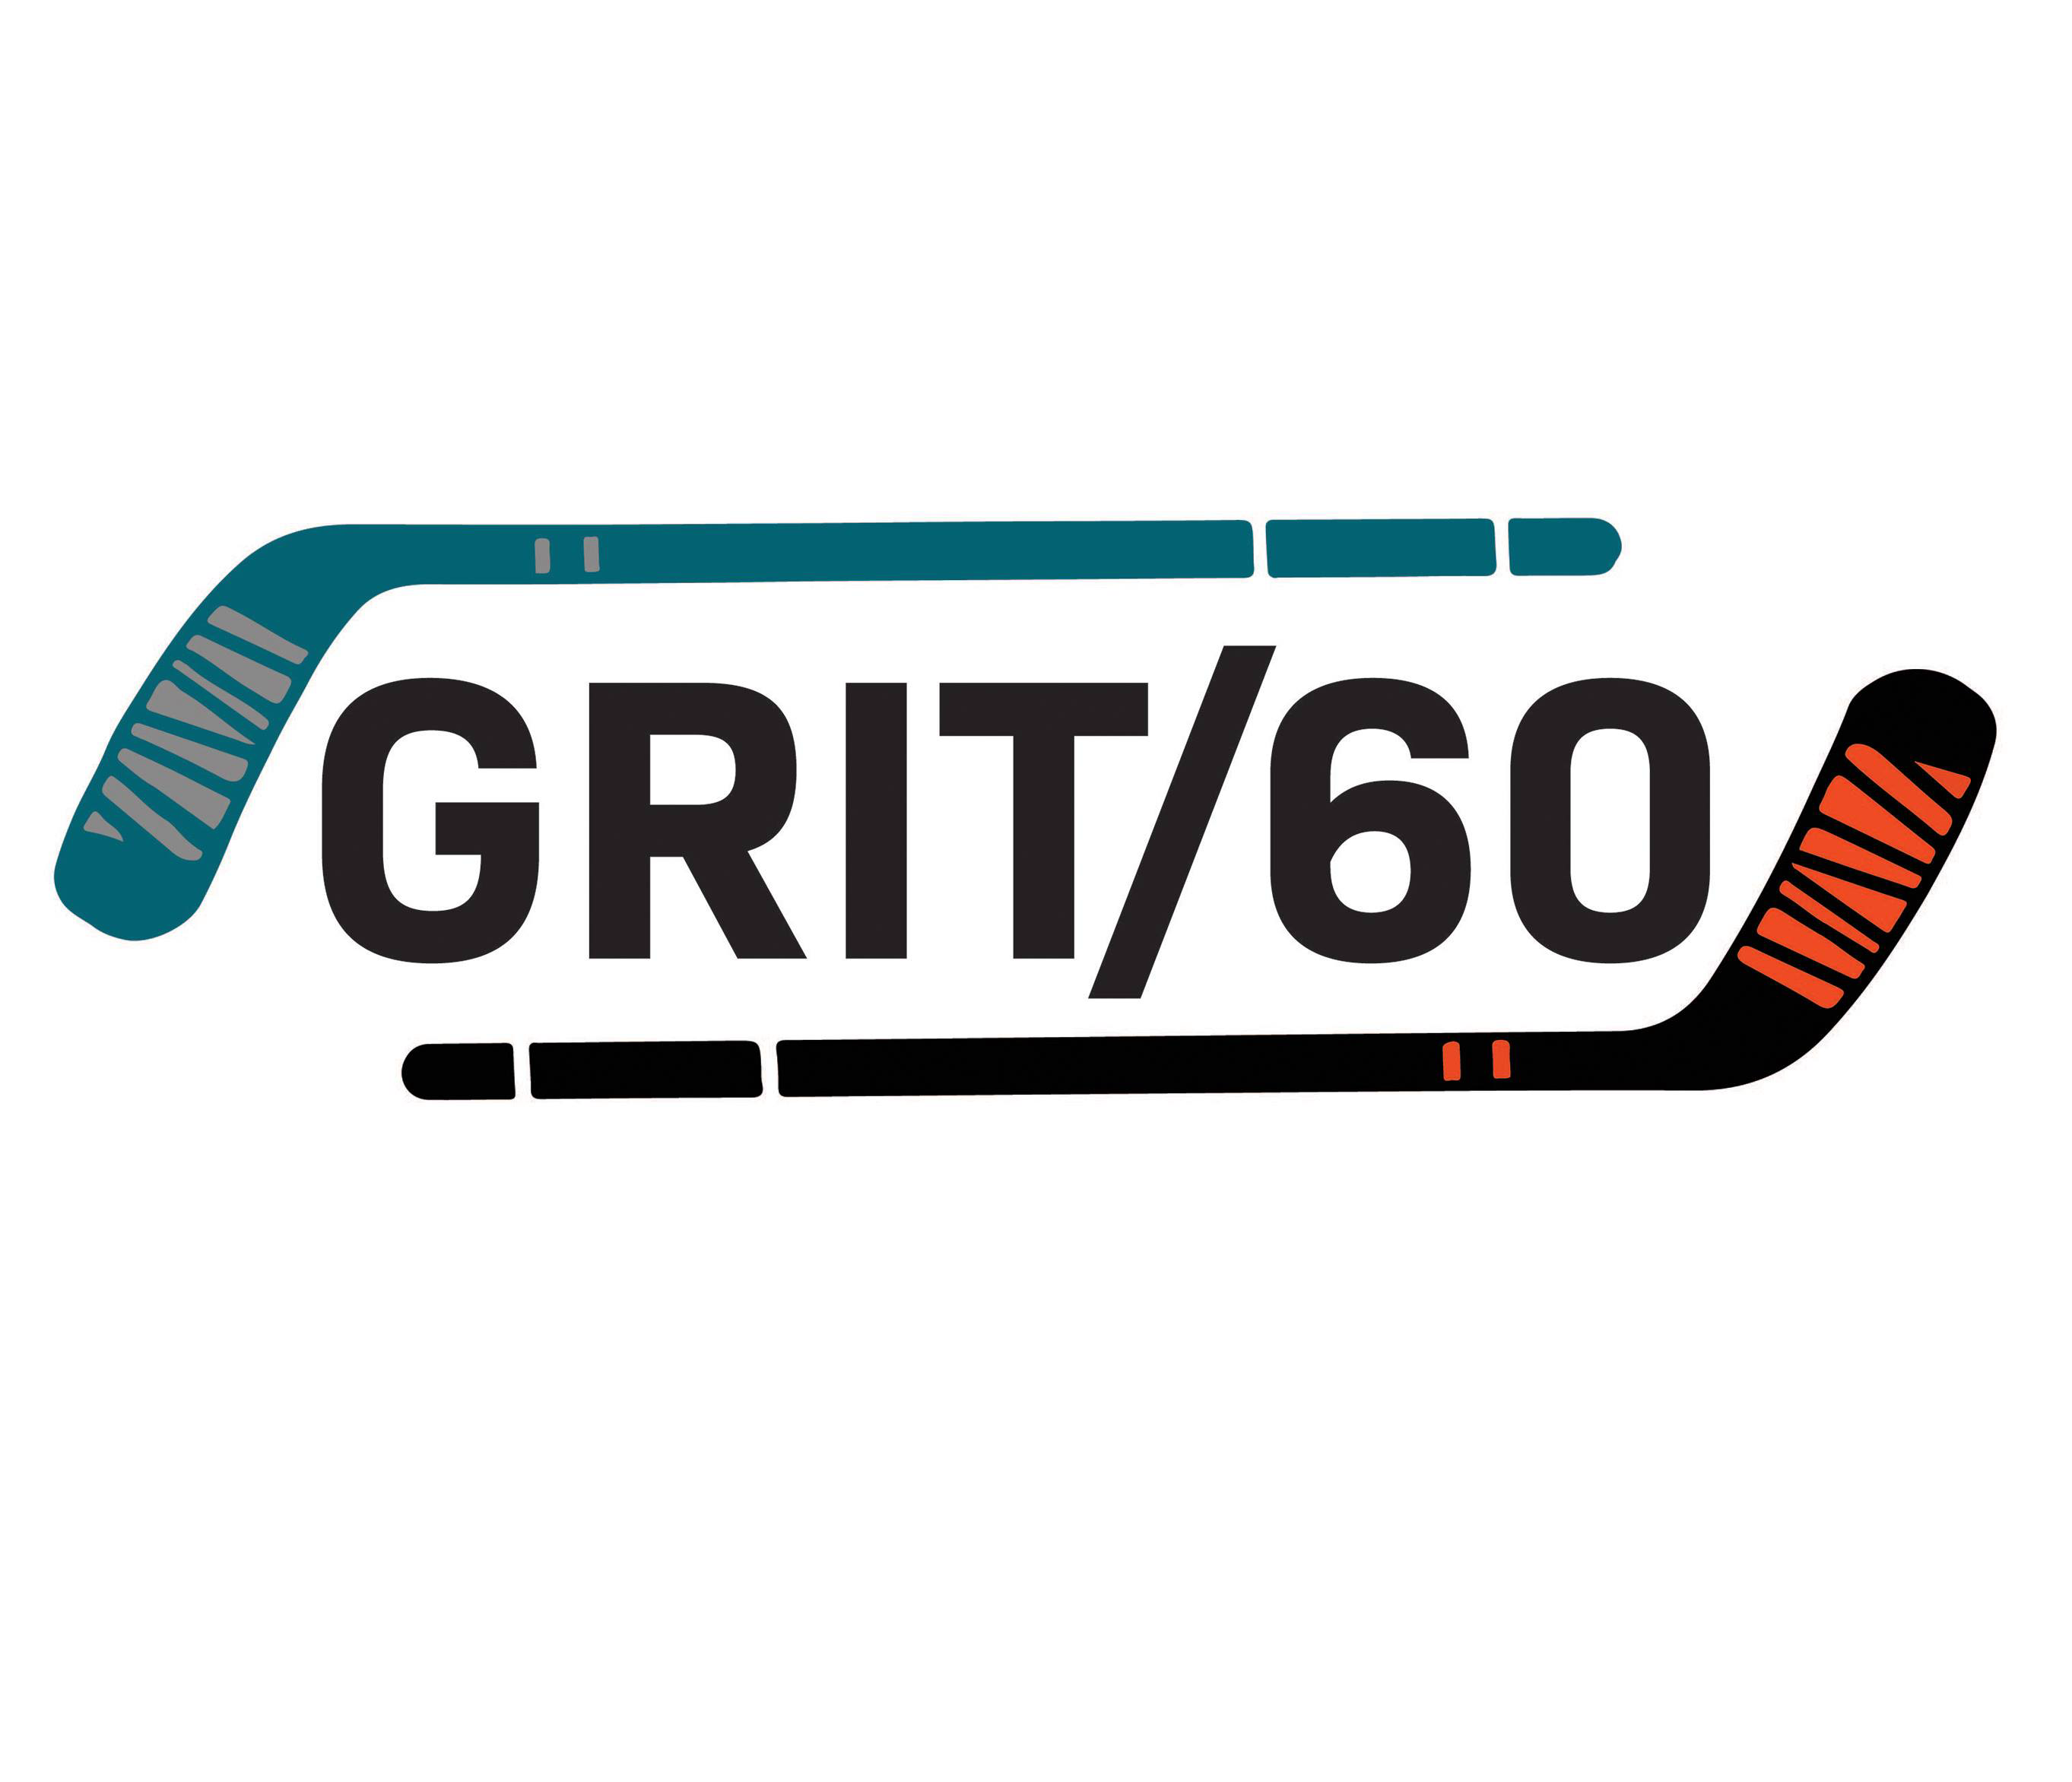 Winnipeg Jets - Grit/60 Podcast - EP60 - S1